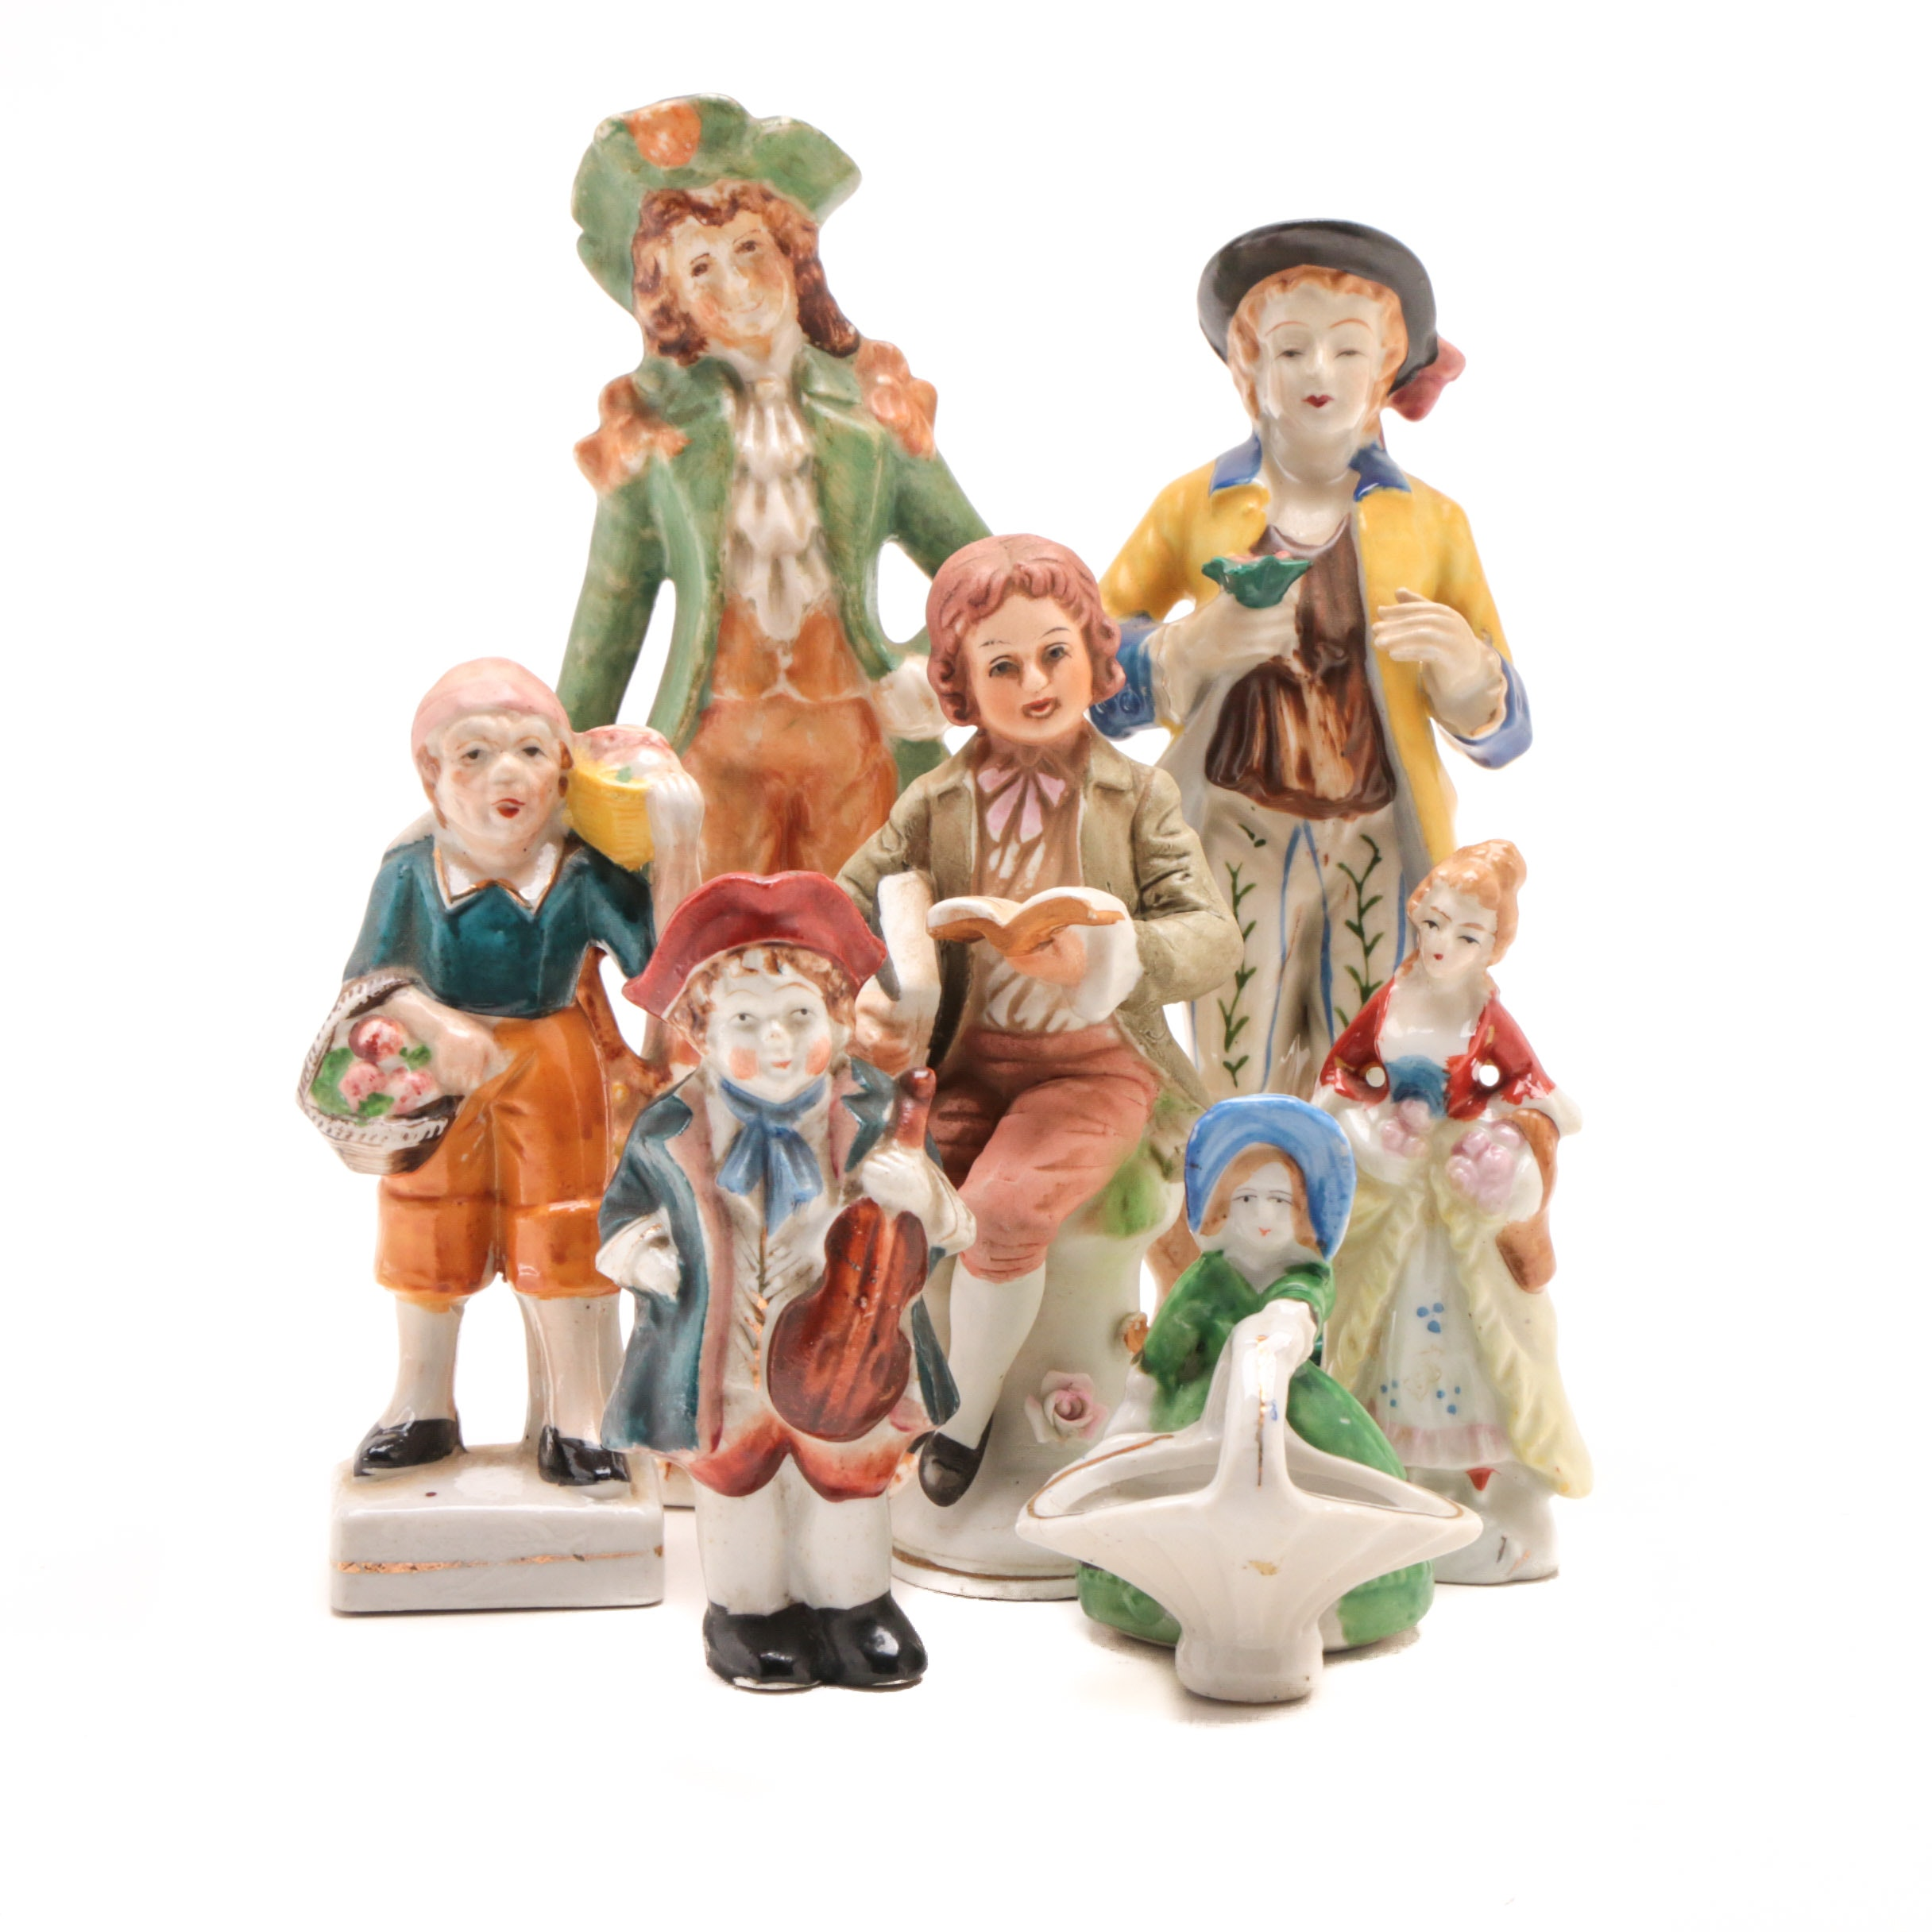 Group of Porcelain Figurines in 18th Century Dress